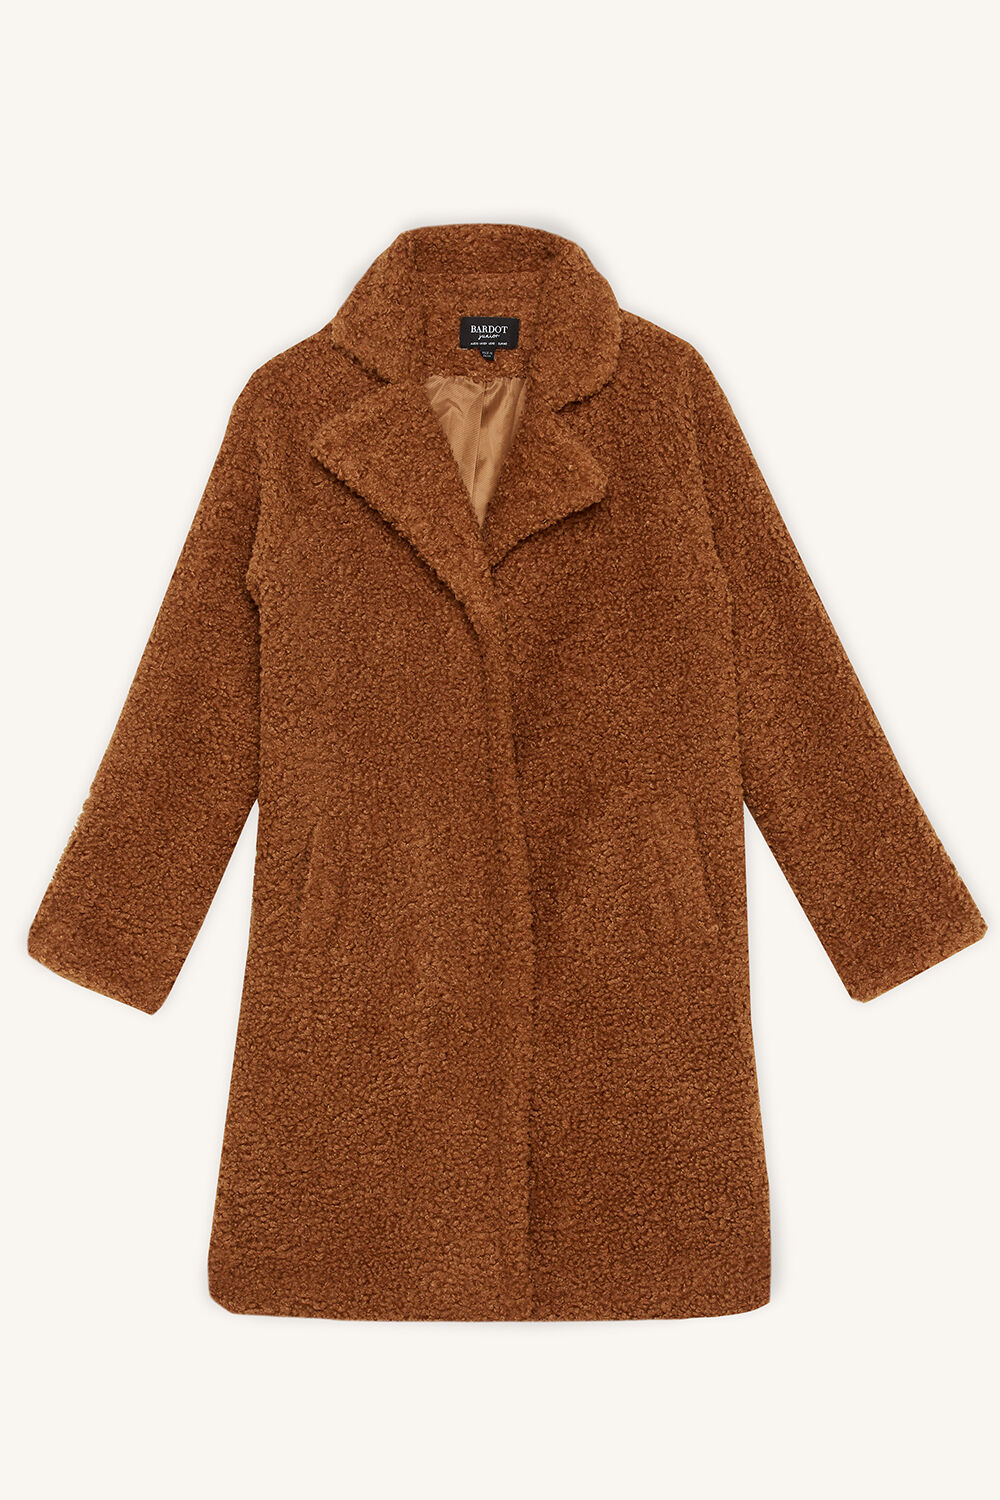 TWEEN GIRL IZZY LONG COAT in colour WOODSMOKE